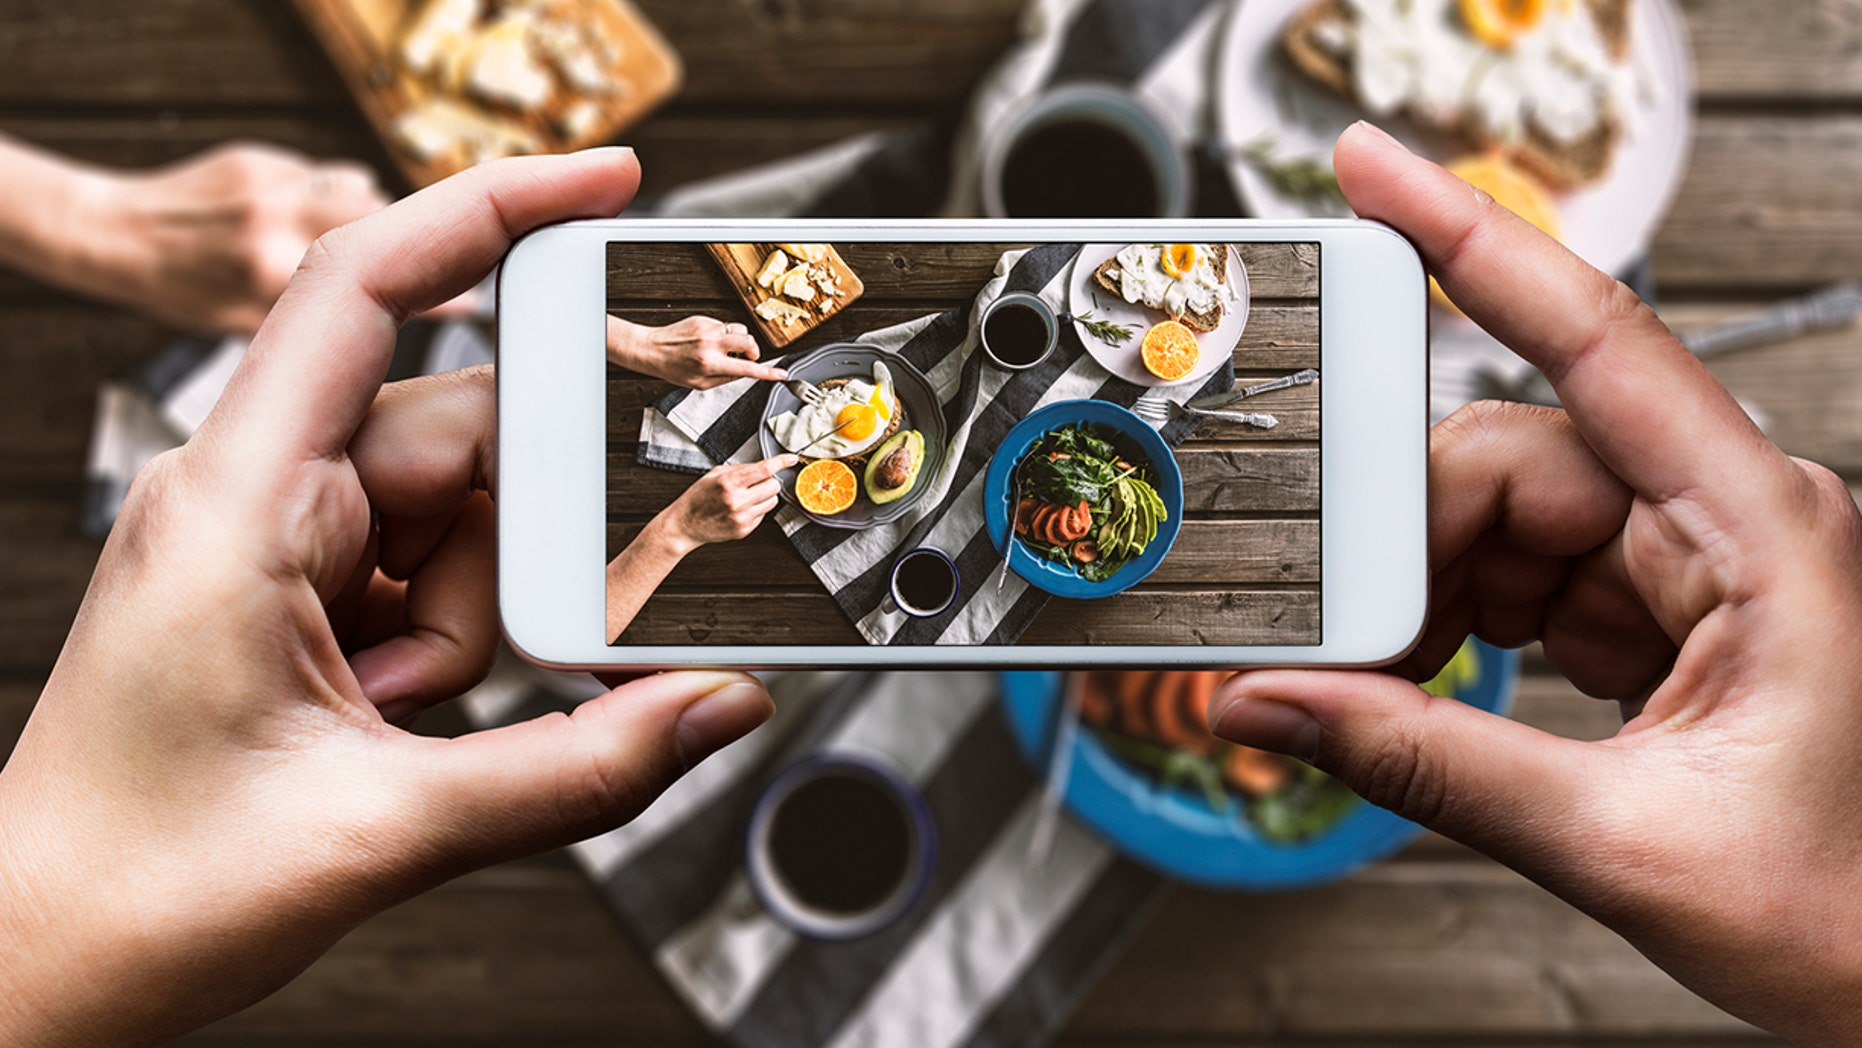 These days, chefs need to prepare for guests who want to Instagram their meals just as much as they want to eat them.